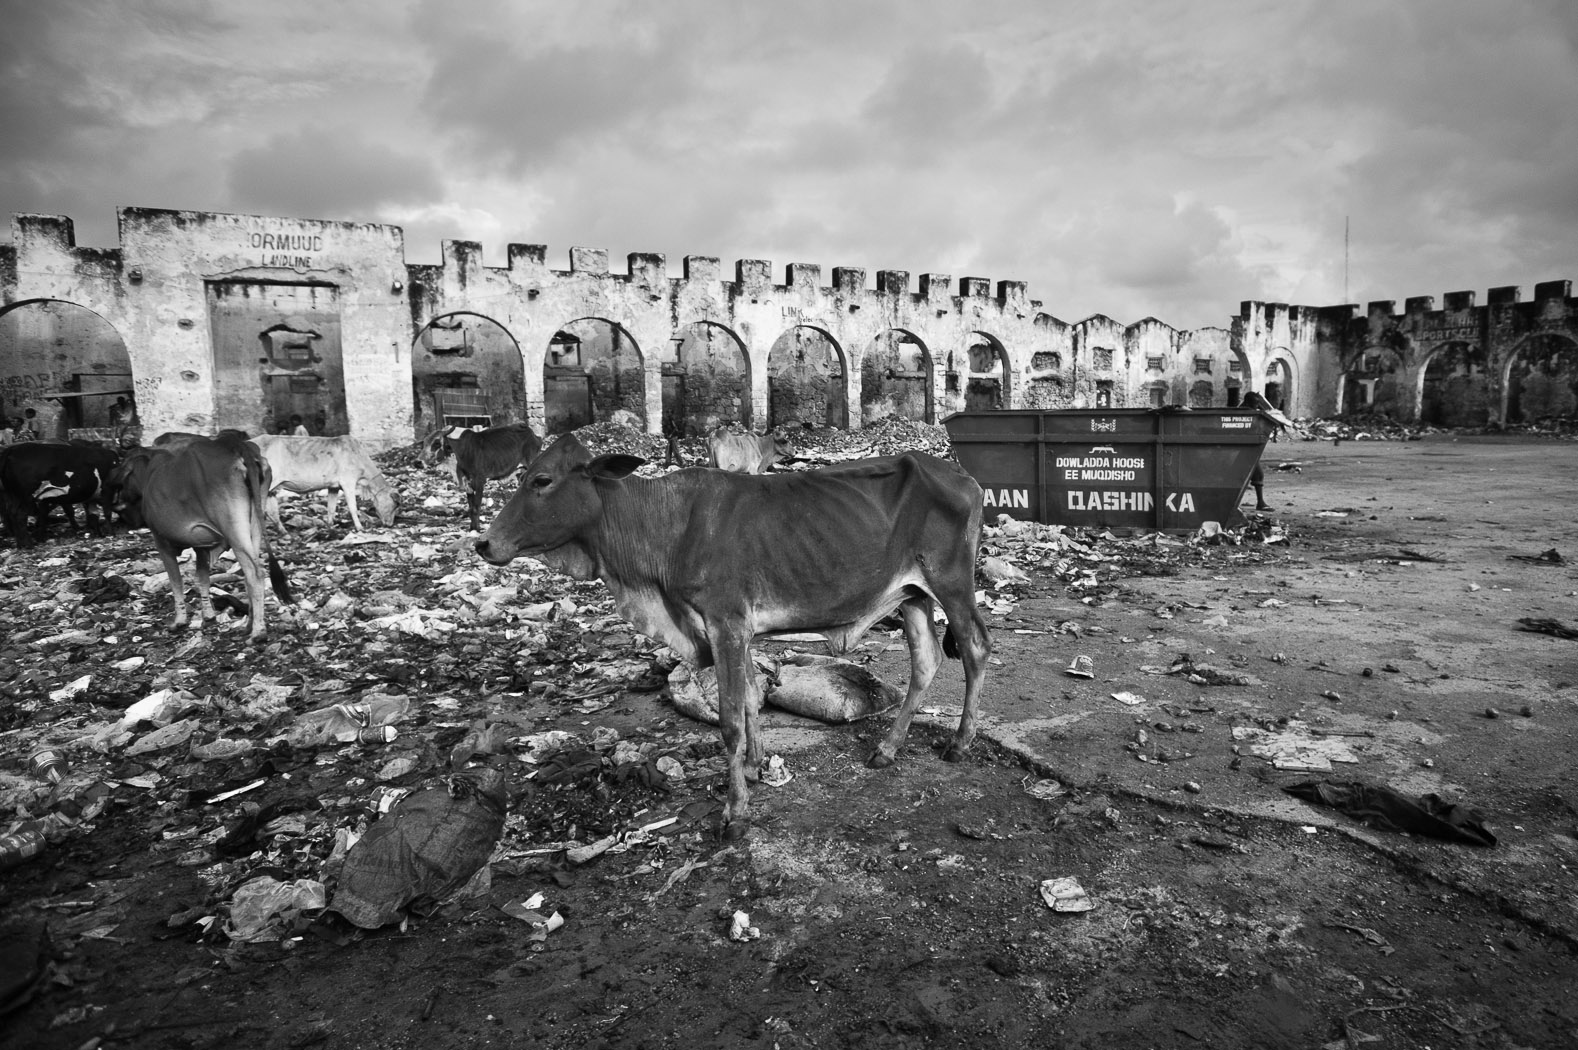 An emaciated cow grazes on trash in Mogadishu's Hamarwayne district. Hamarwayne used to be one of the busiest areas of the city, with this site being the former gold souq.